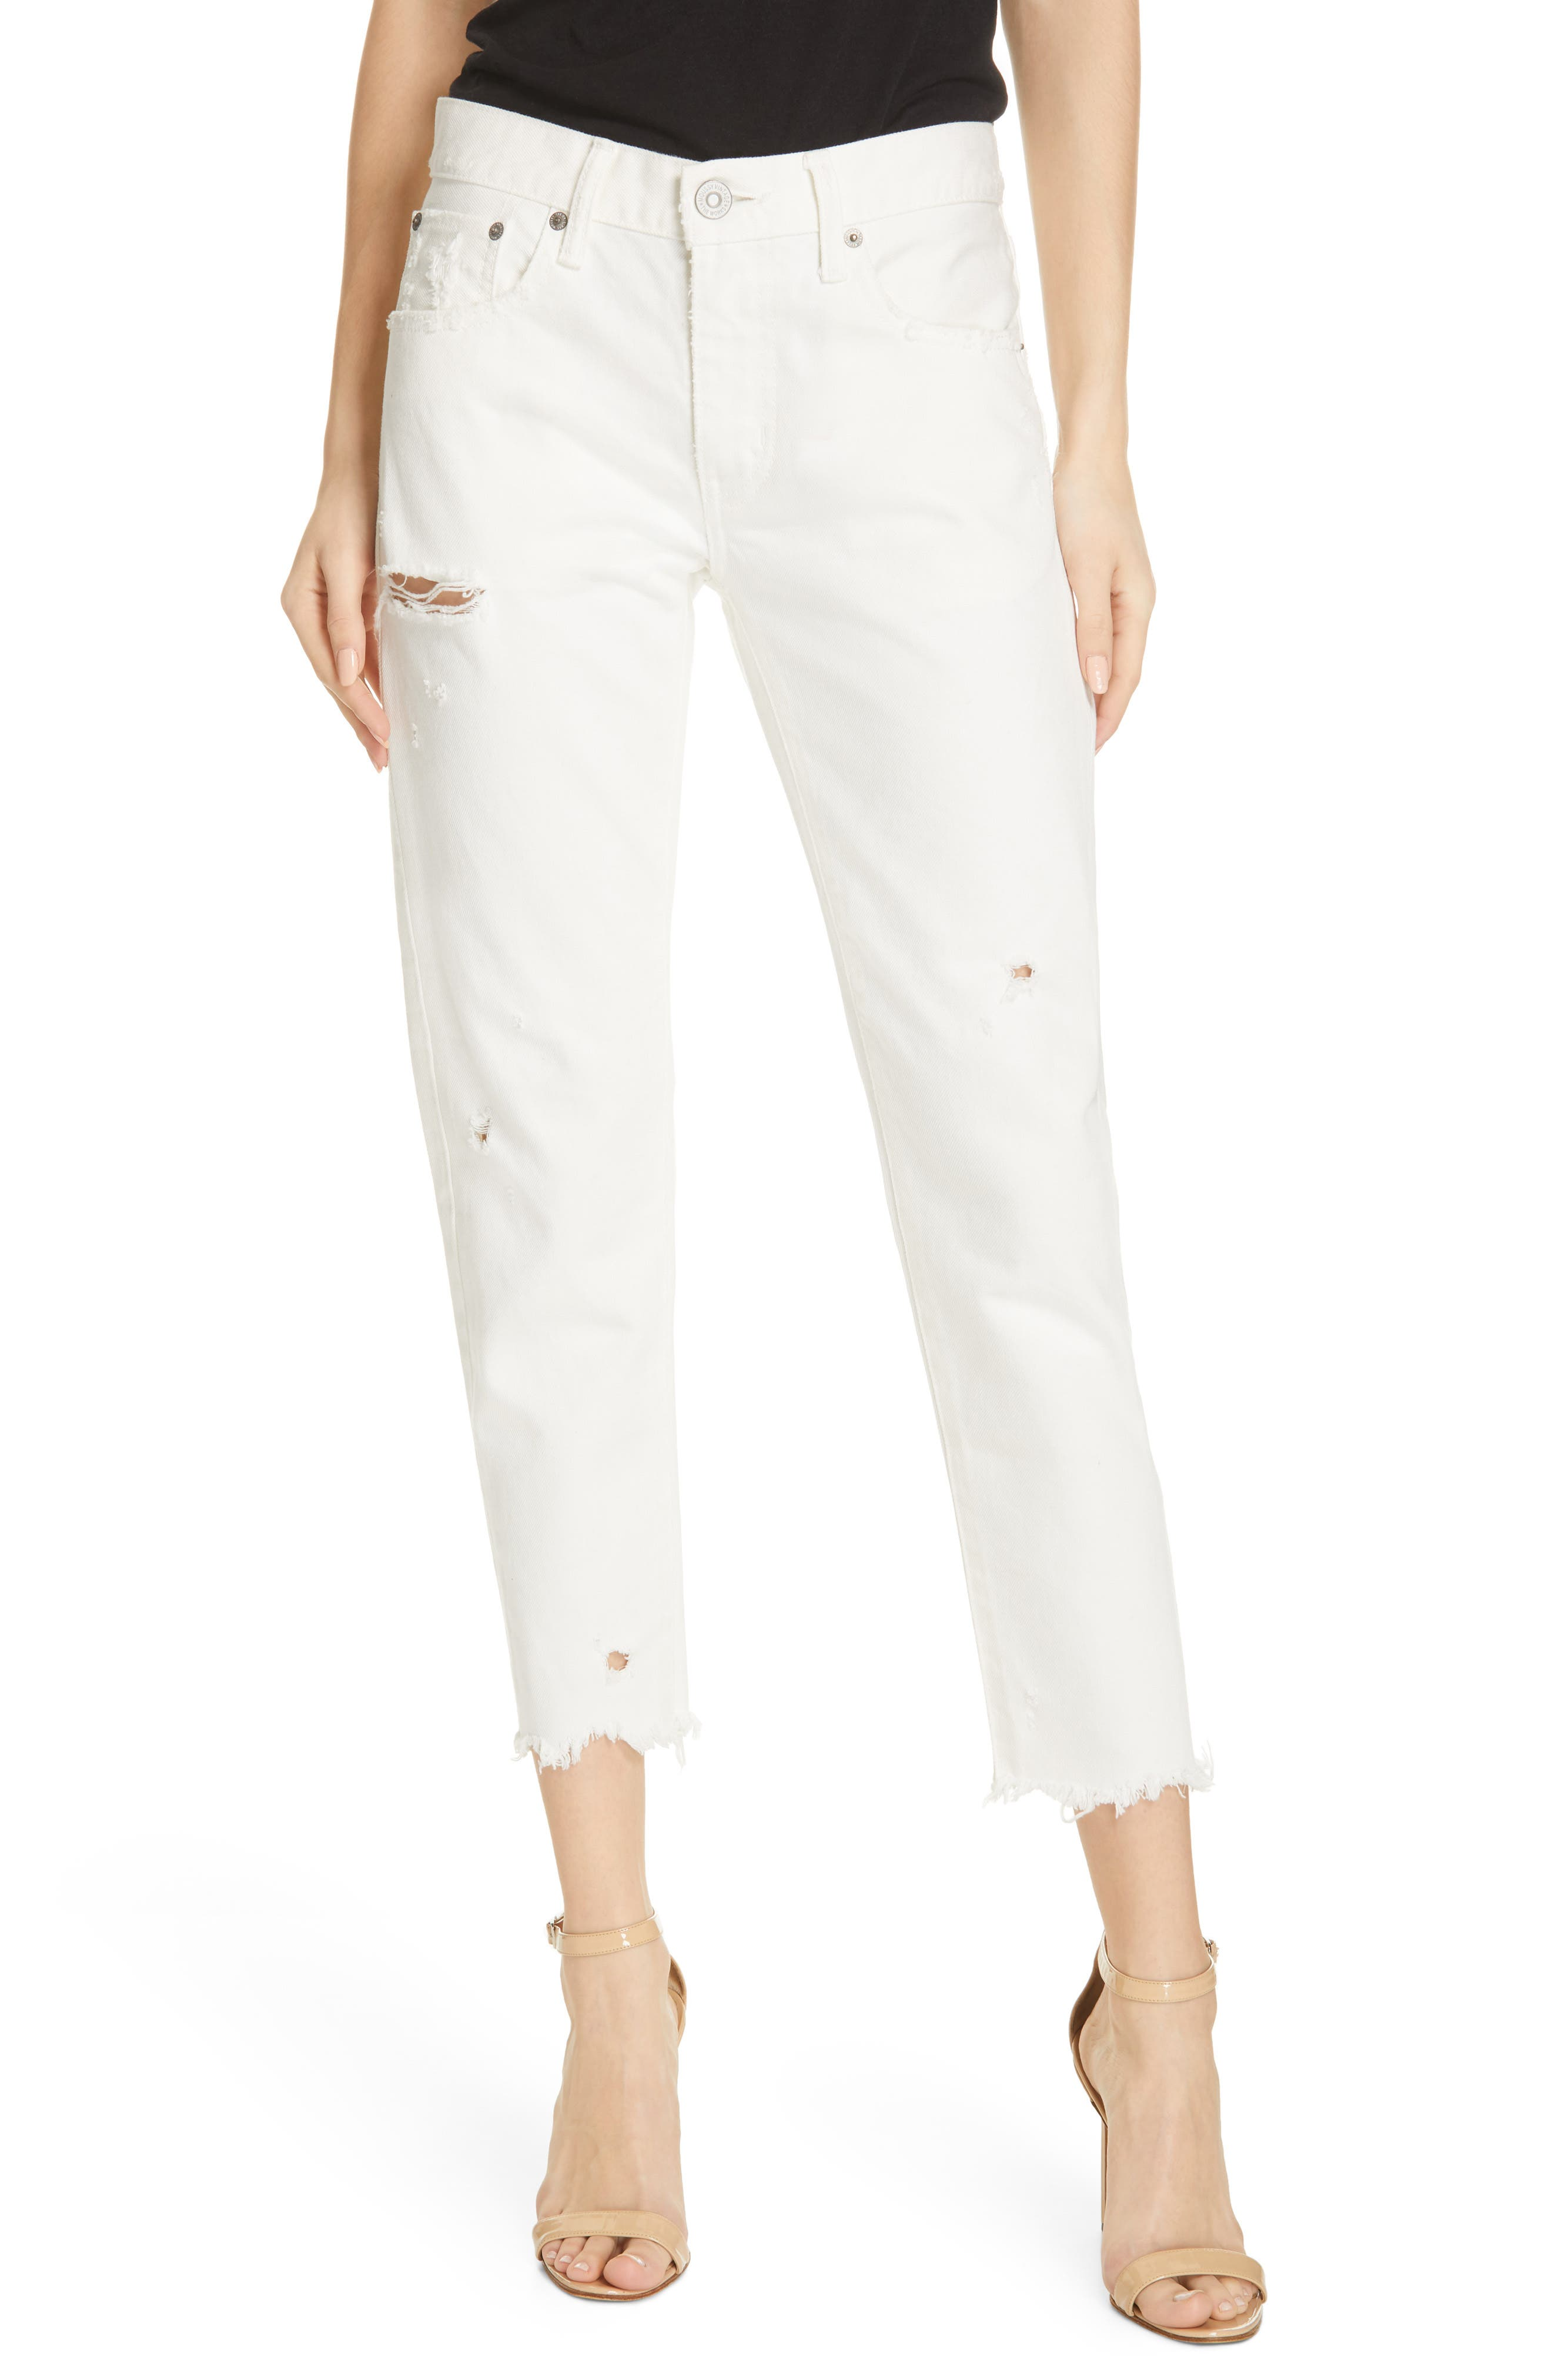 MOUSSY VINTAGE, Kelley Tapered Crop Jeans, Main thumbnail 1, color, WHITE